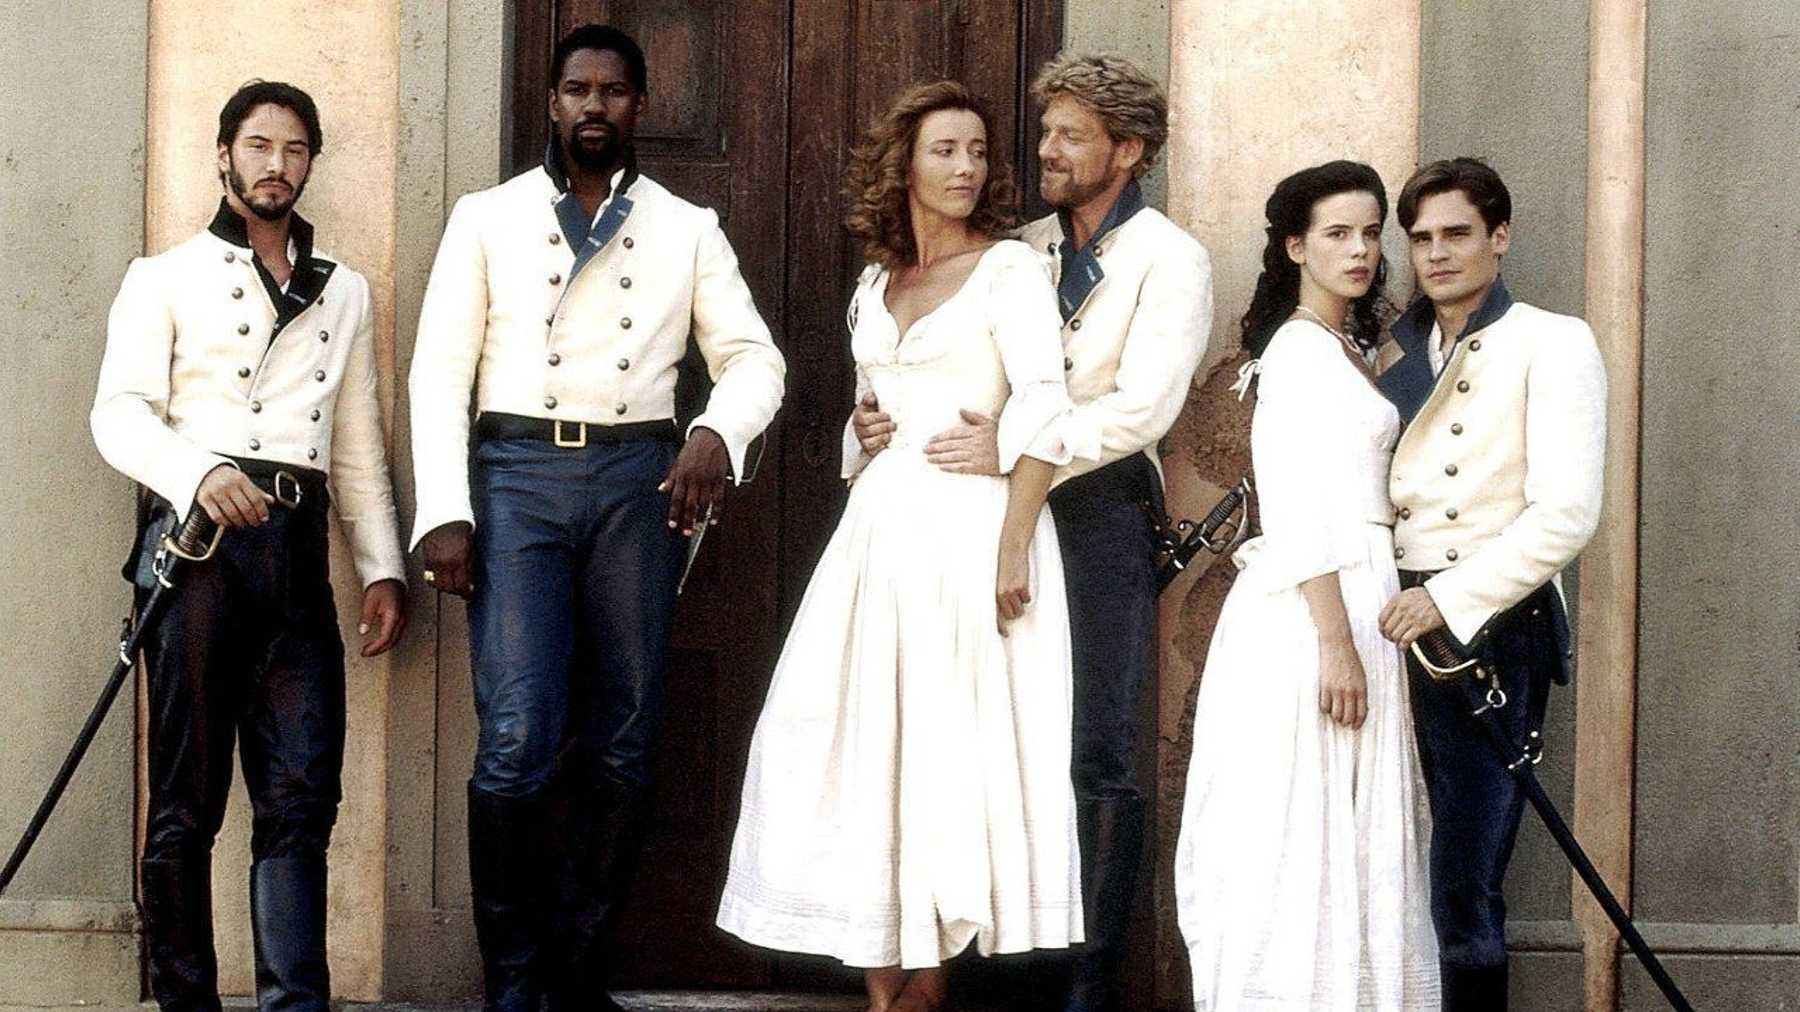 Comparing Branagh and Whedon's 'Much Ado About Nothing' - mxdwn Movies